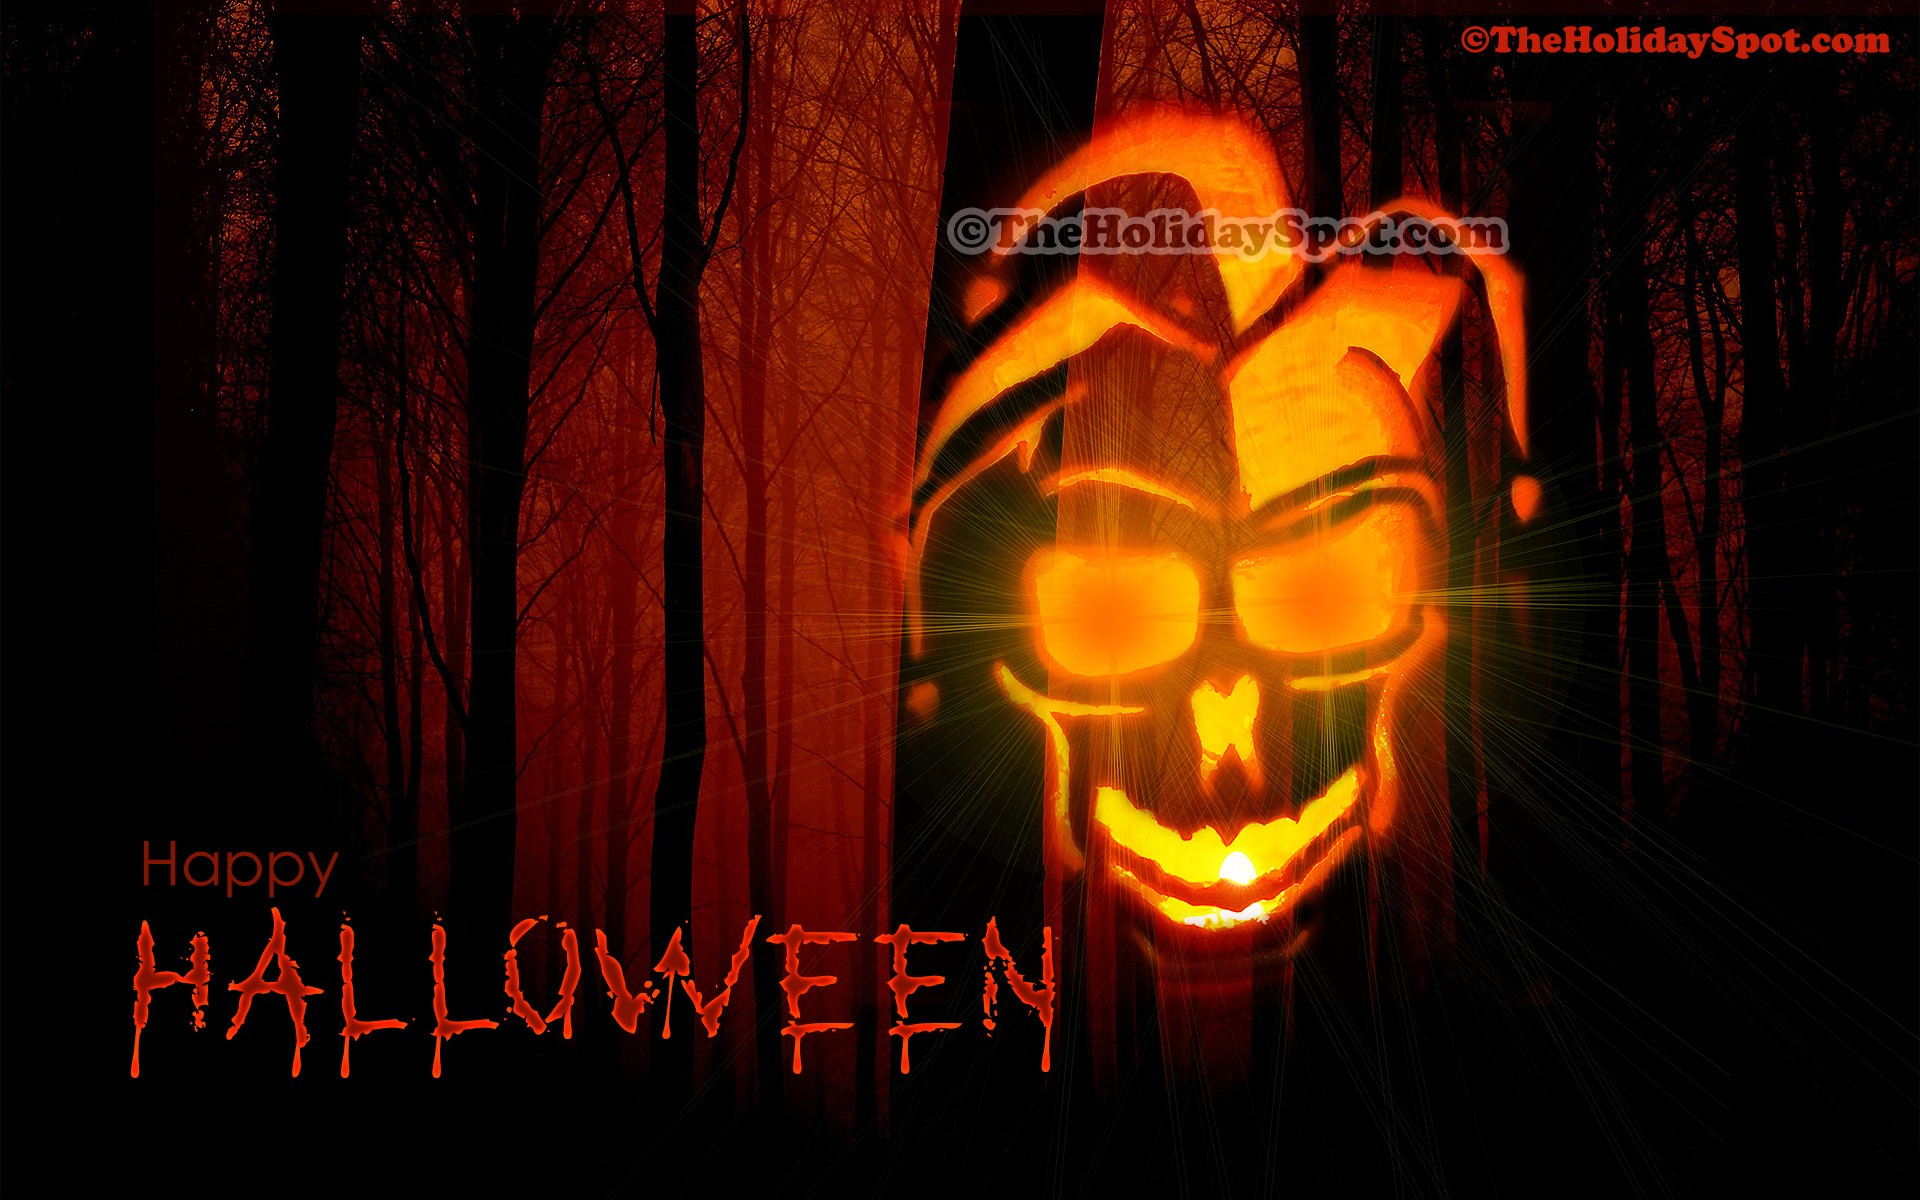 Halloween Fall Iphone Wallpaper Happy Halloween Wallpaper 183 ① Download Free Stunning Full